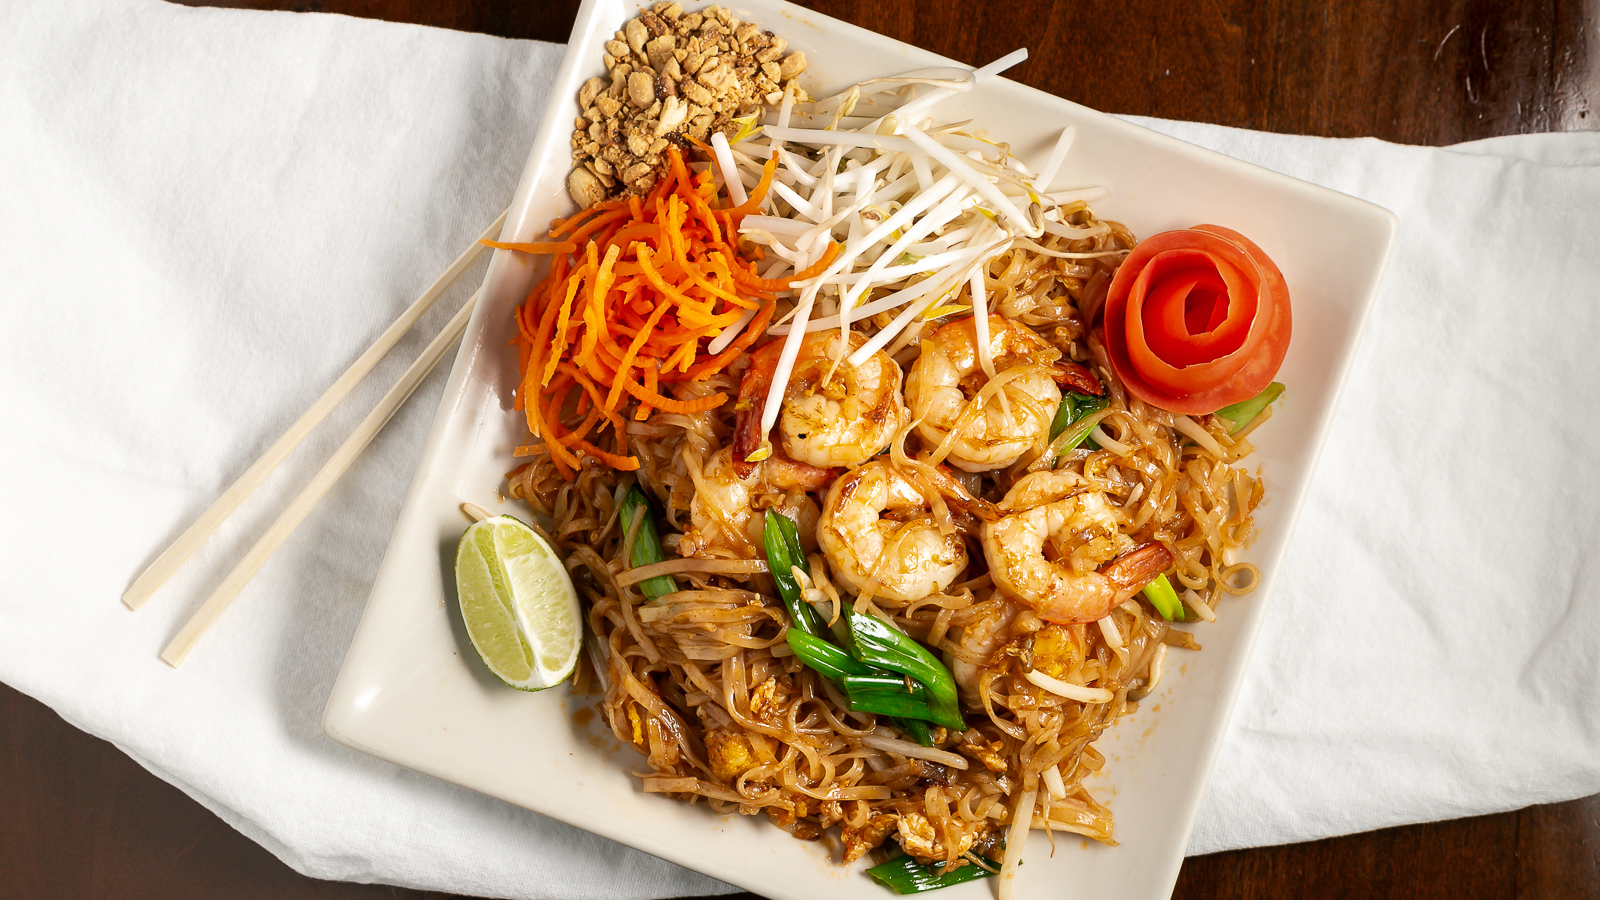 Image of Pad Thai from VIP Thai